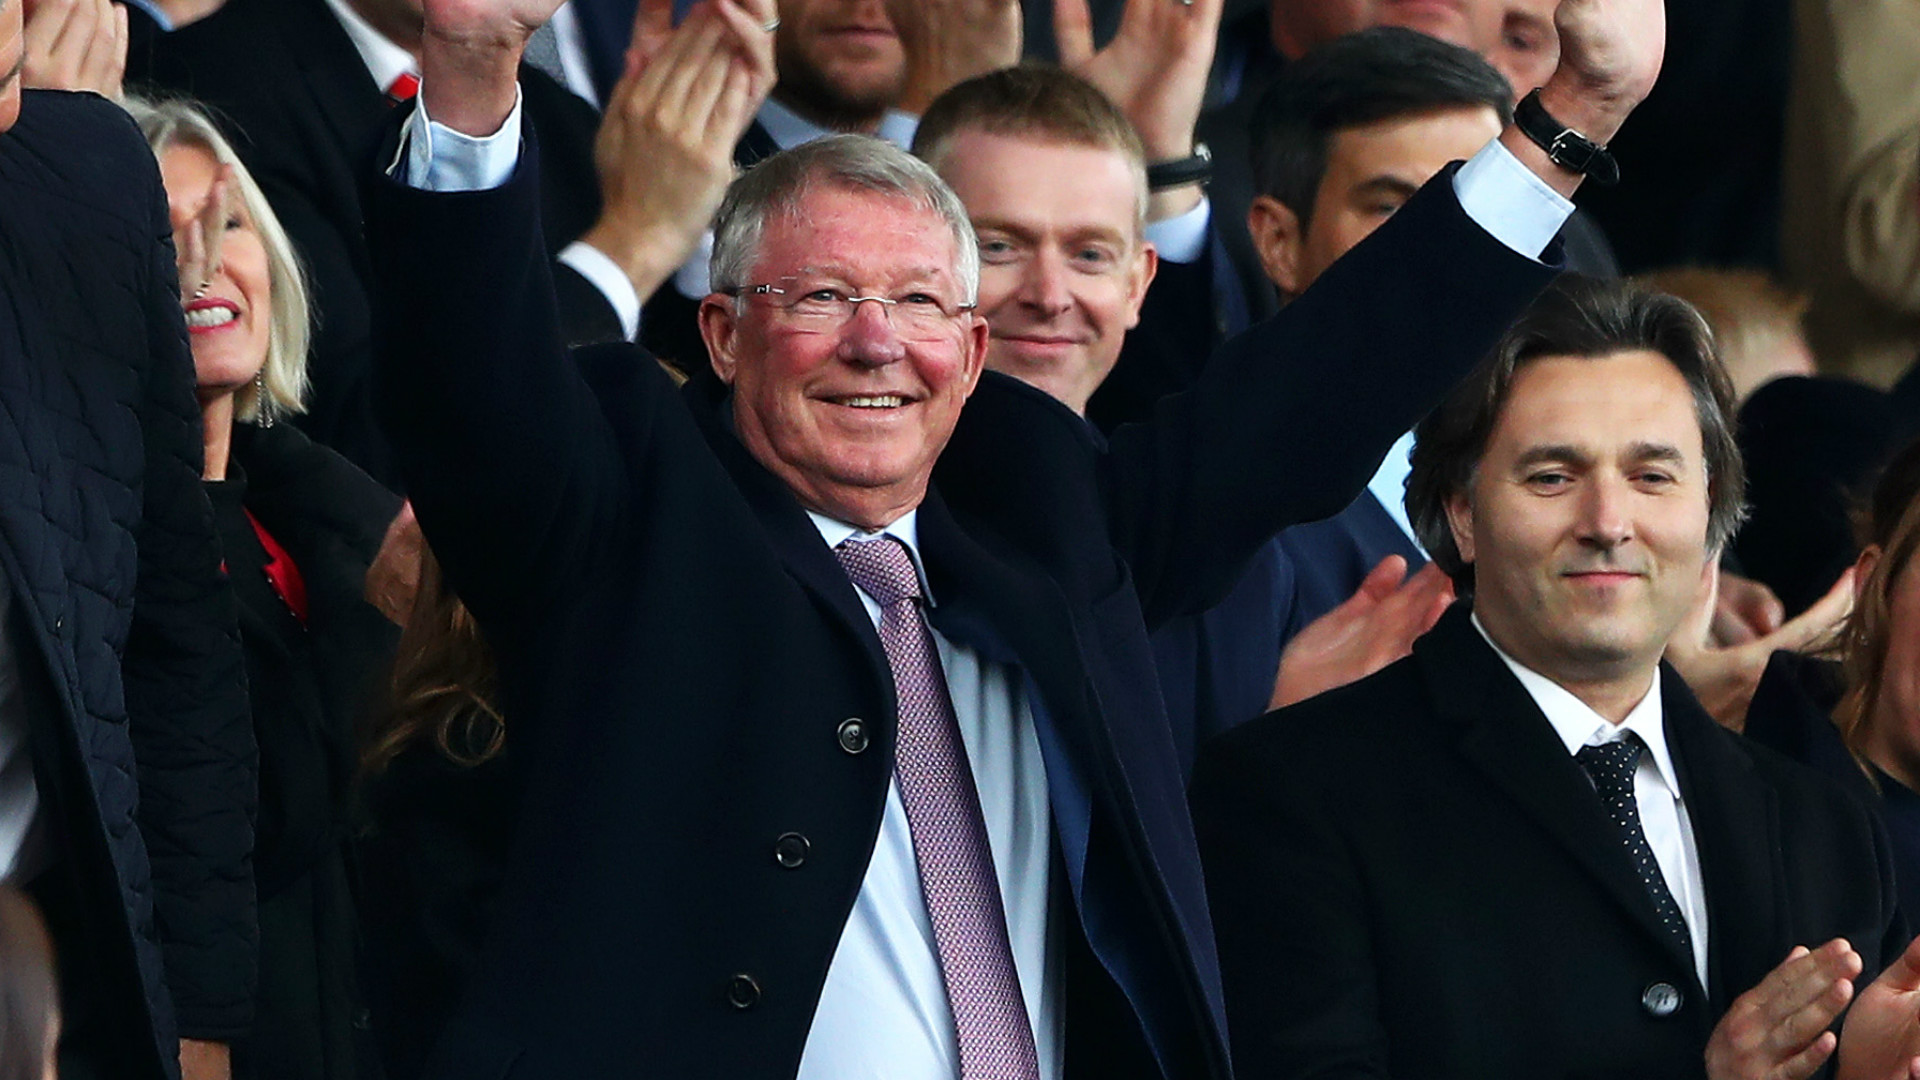 Ferguson returns to Old Trafford for first time since operation